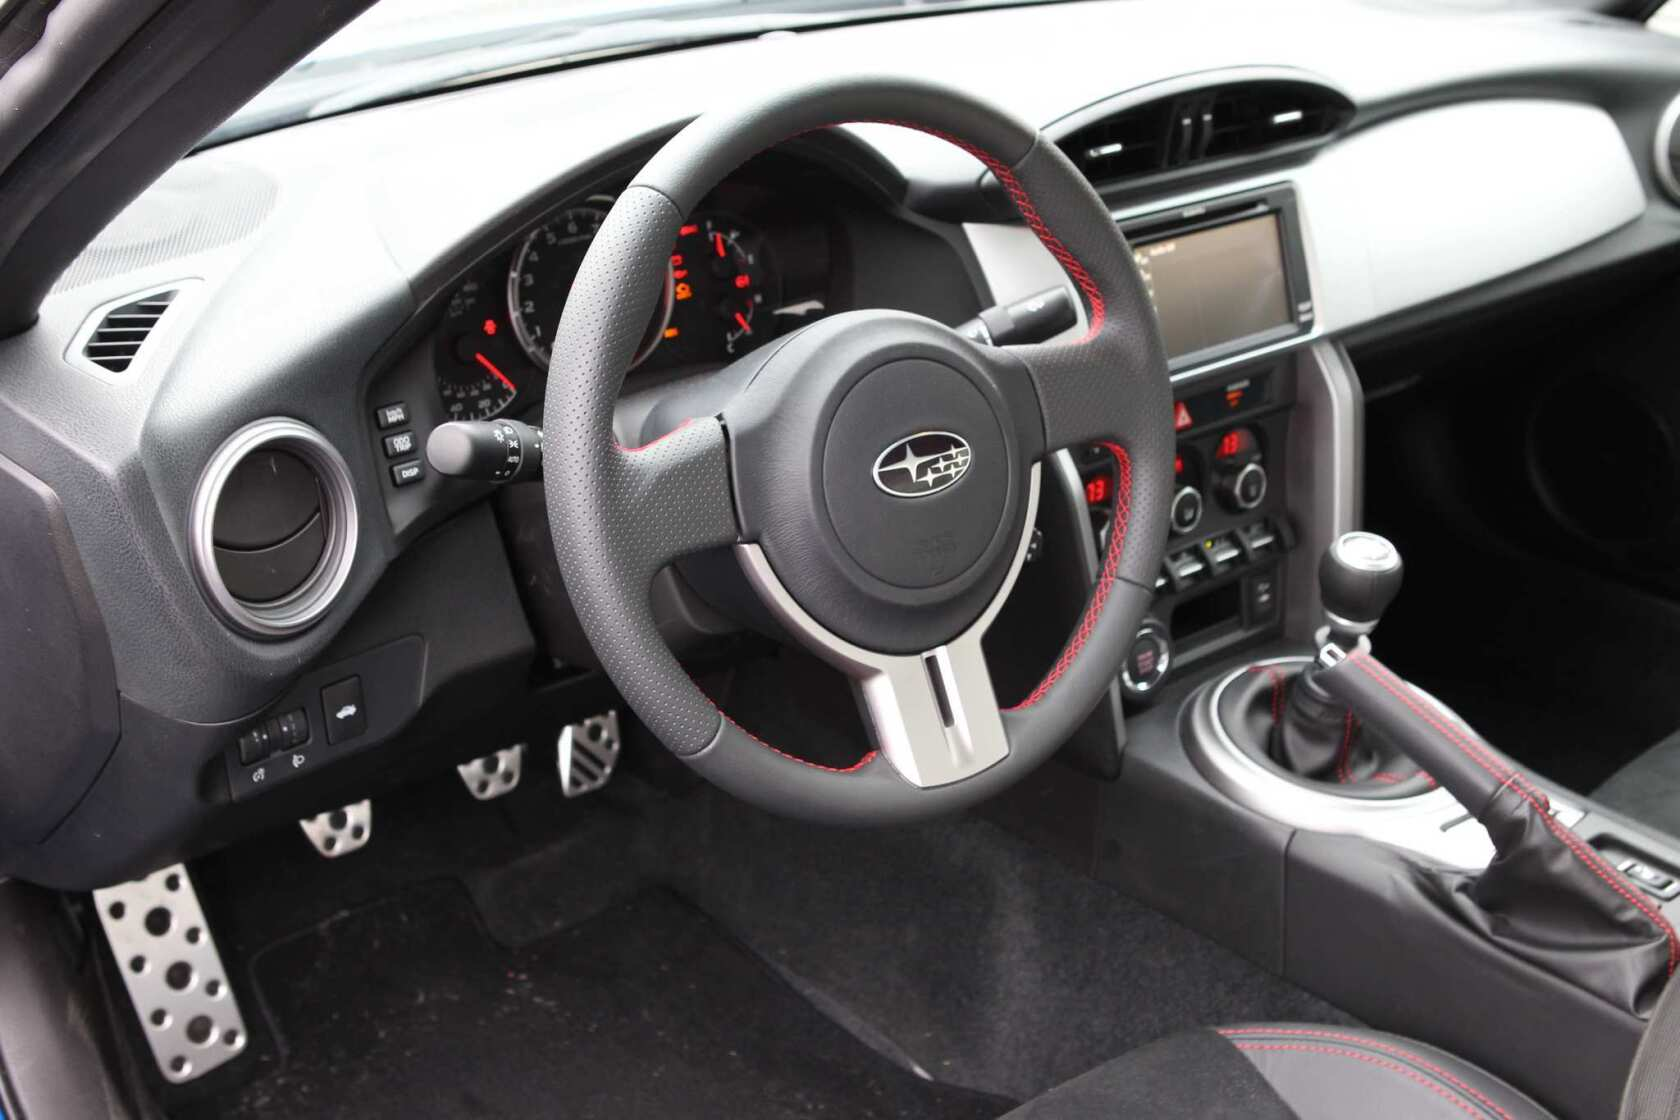 Review: 2013 Subaru BRZ is an honest-to-goodness sports car